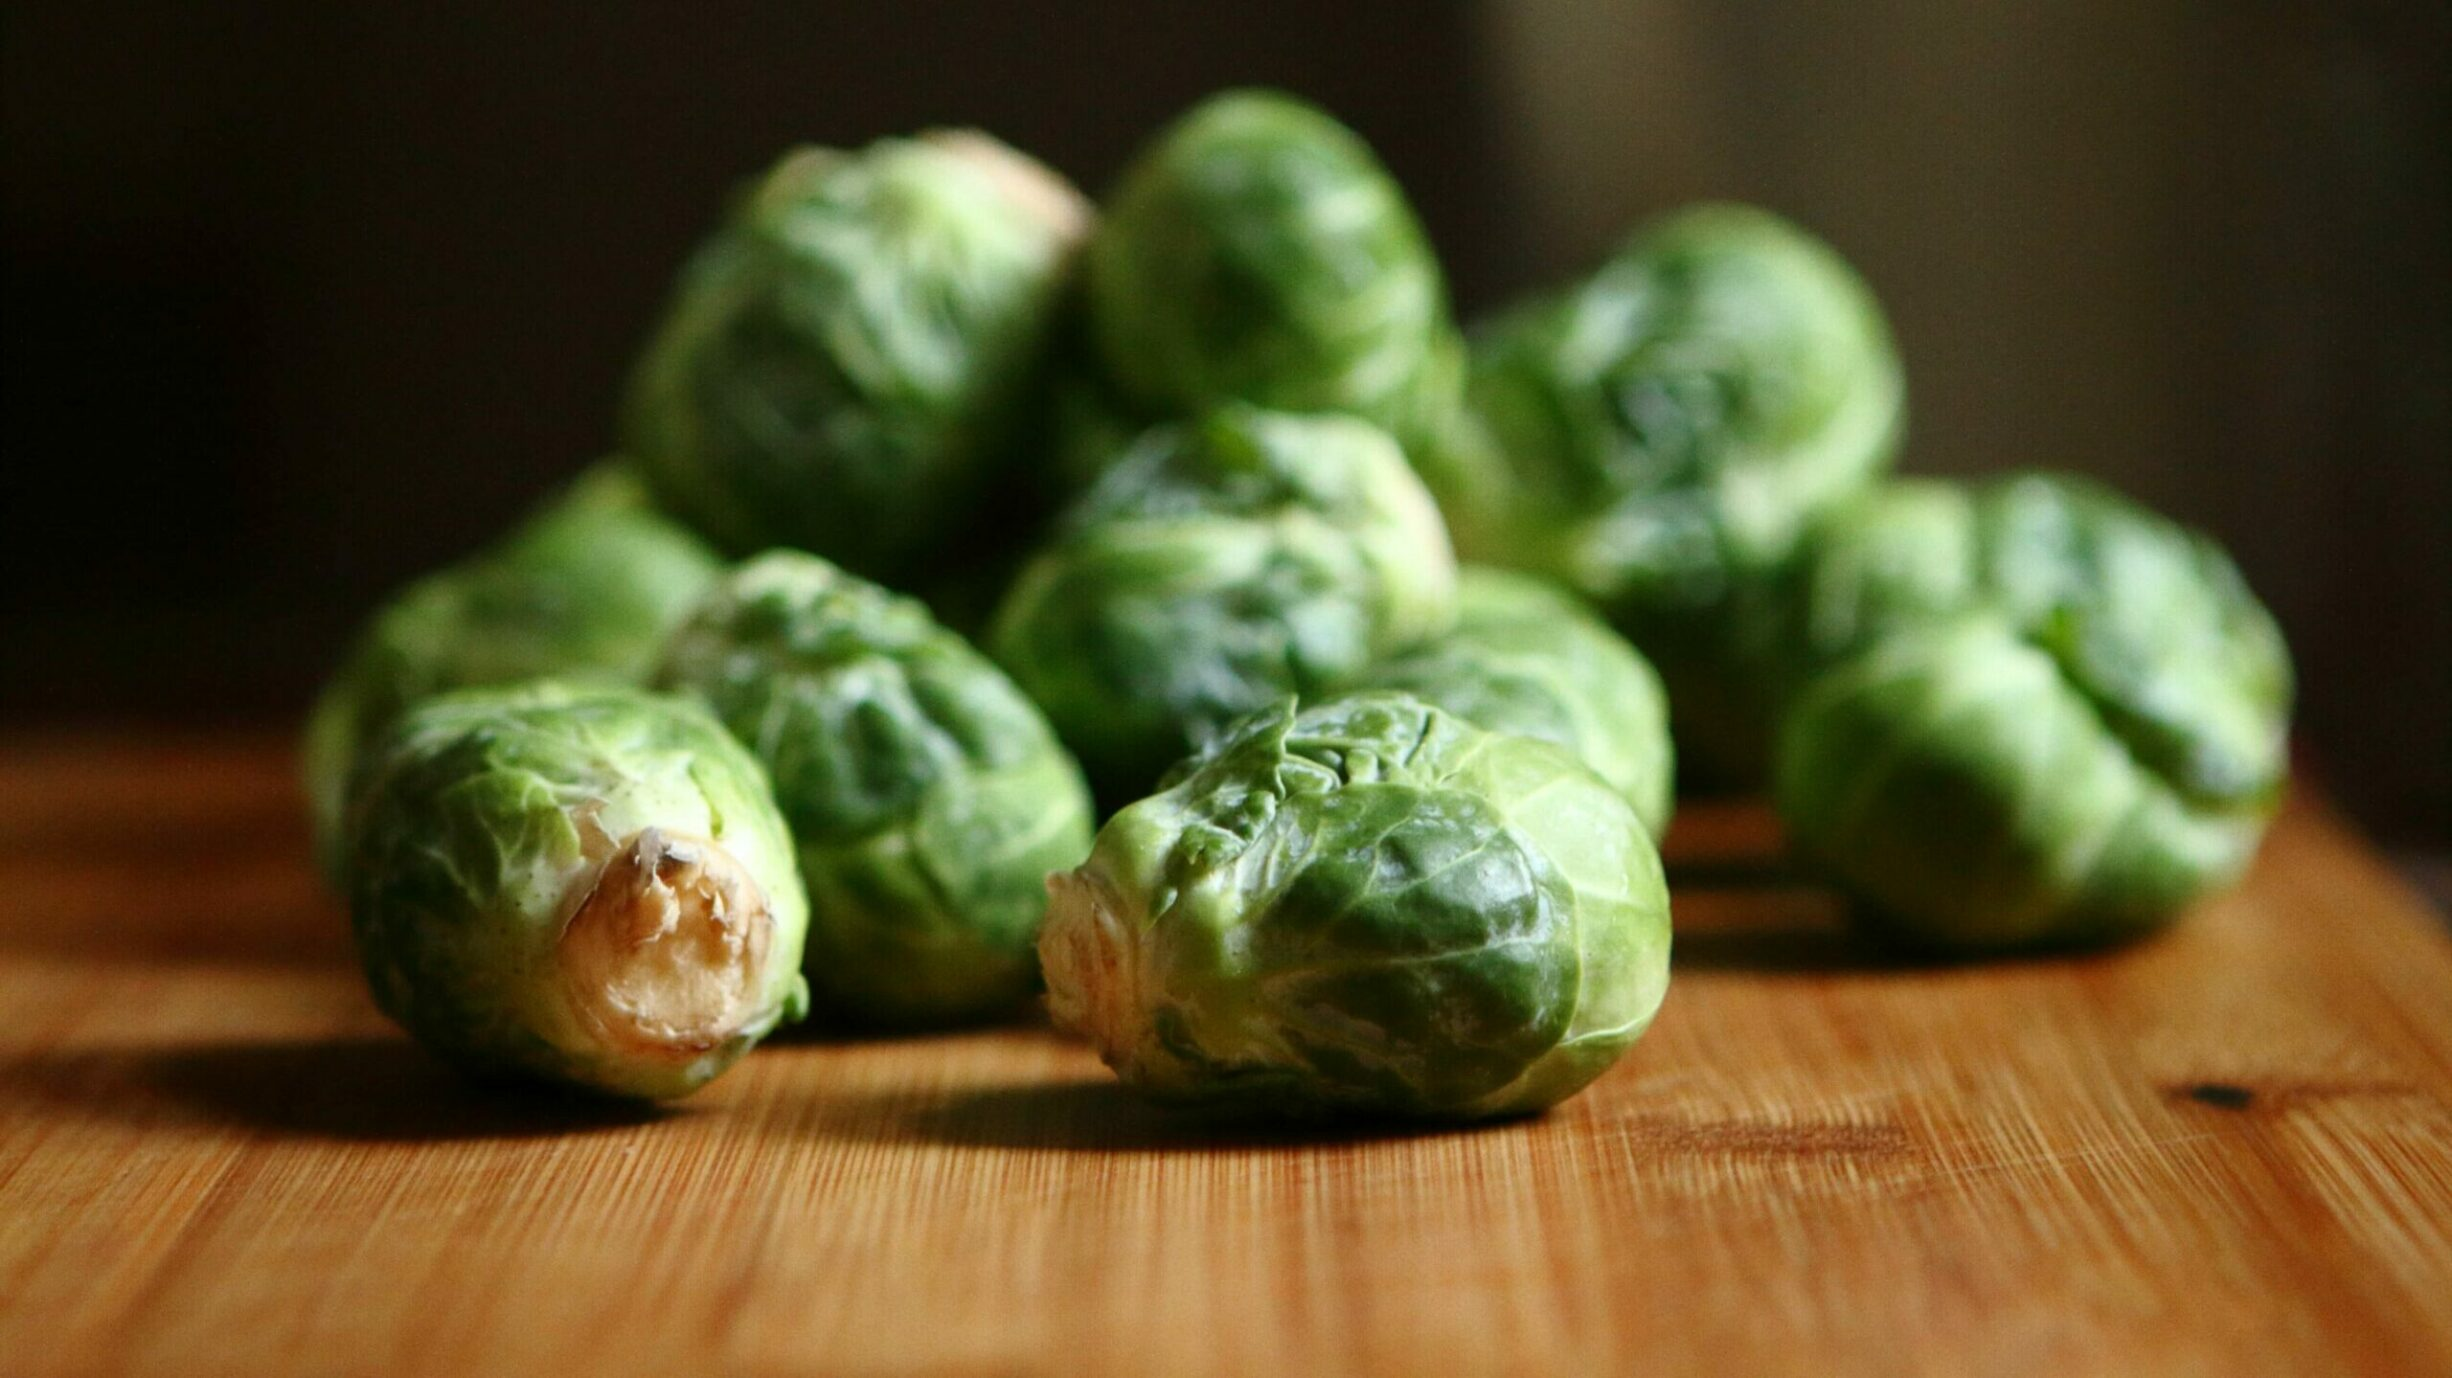 raw brussel sprouts on table